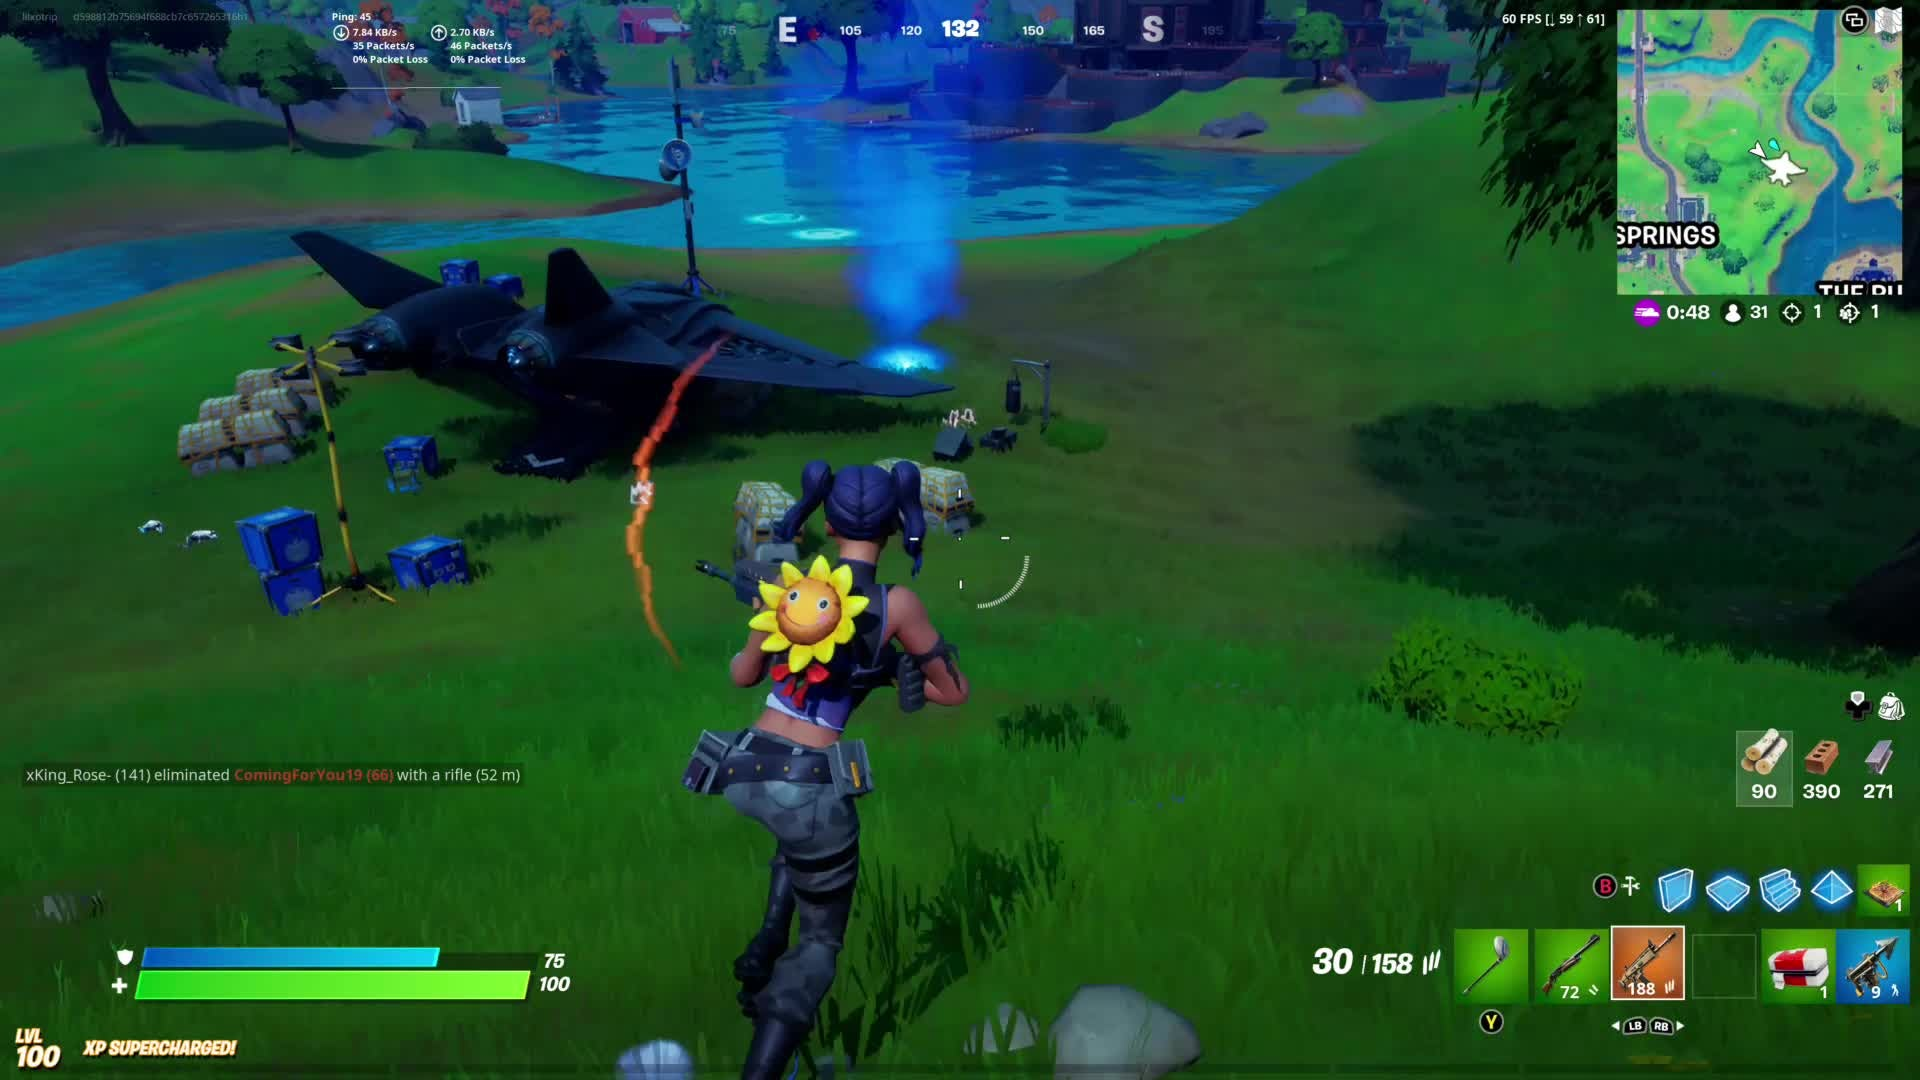 Fortnite: General - just a small clip😎 video cover image 0